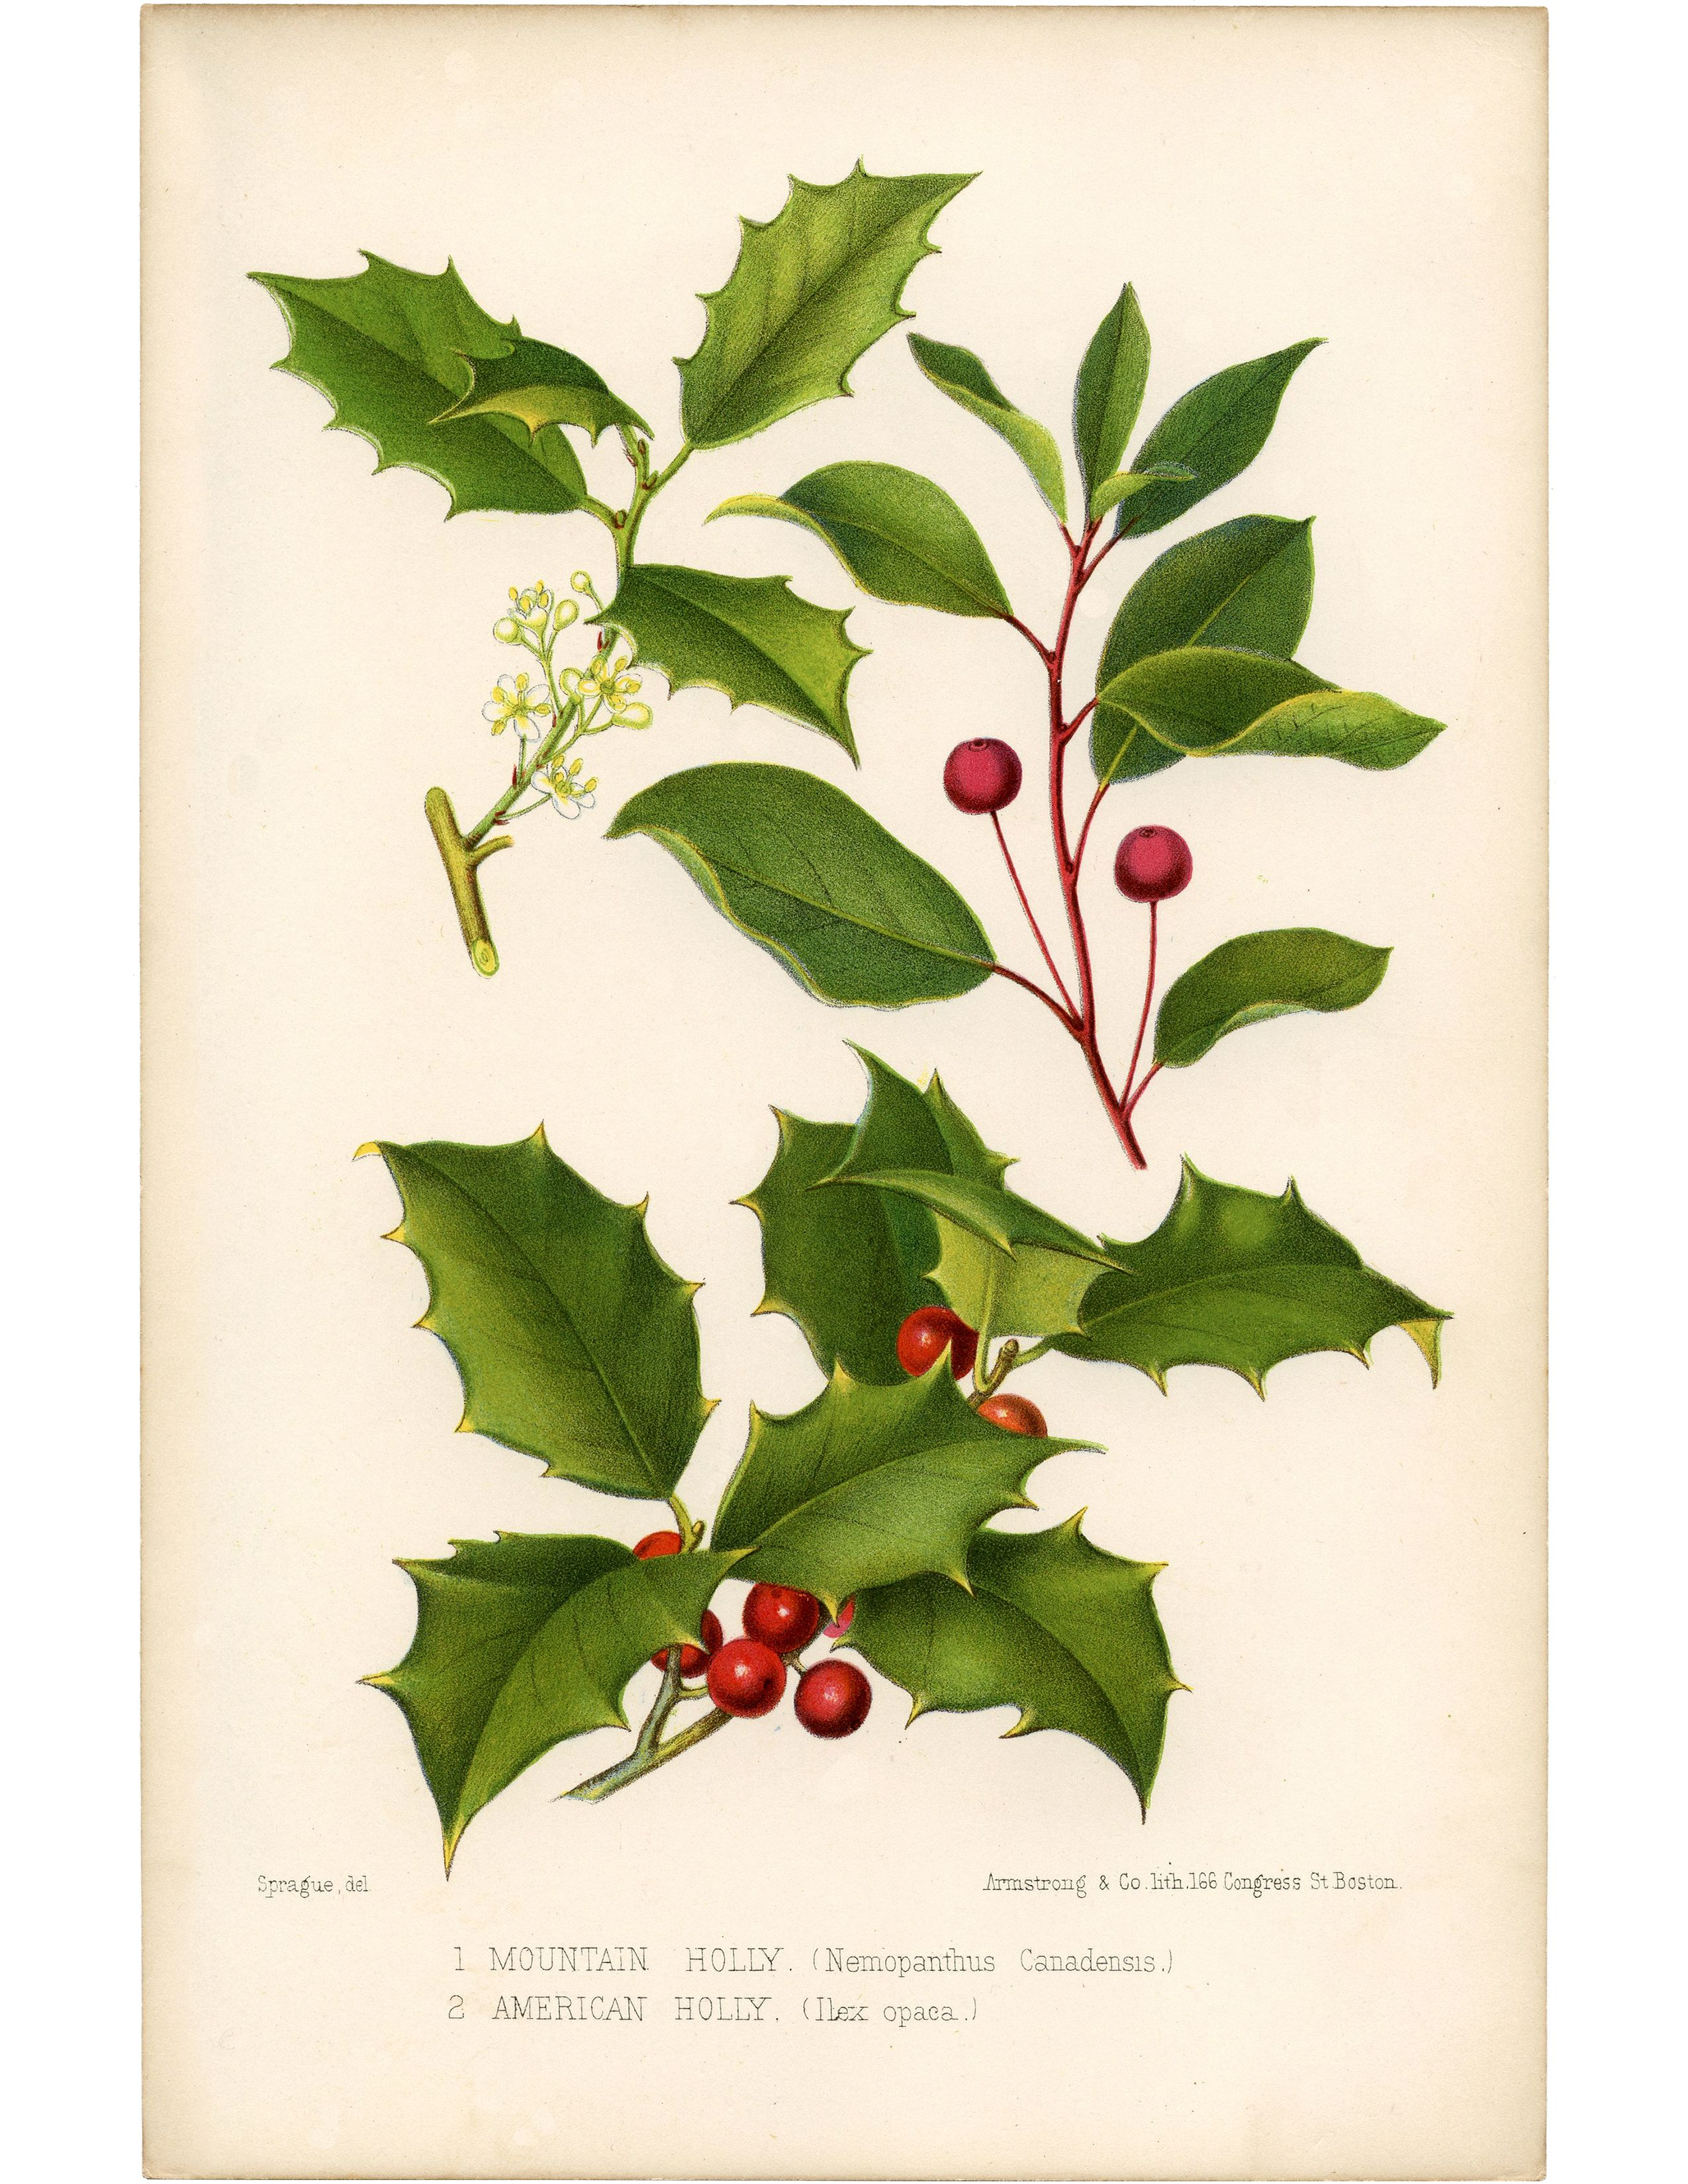 vintage christmas flower, holly and berries image, vintage floral ...